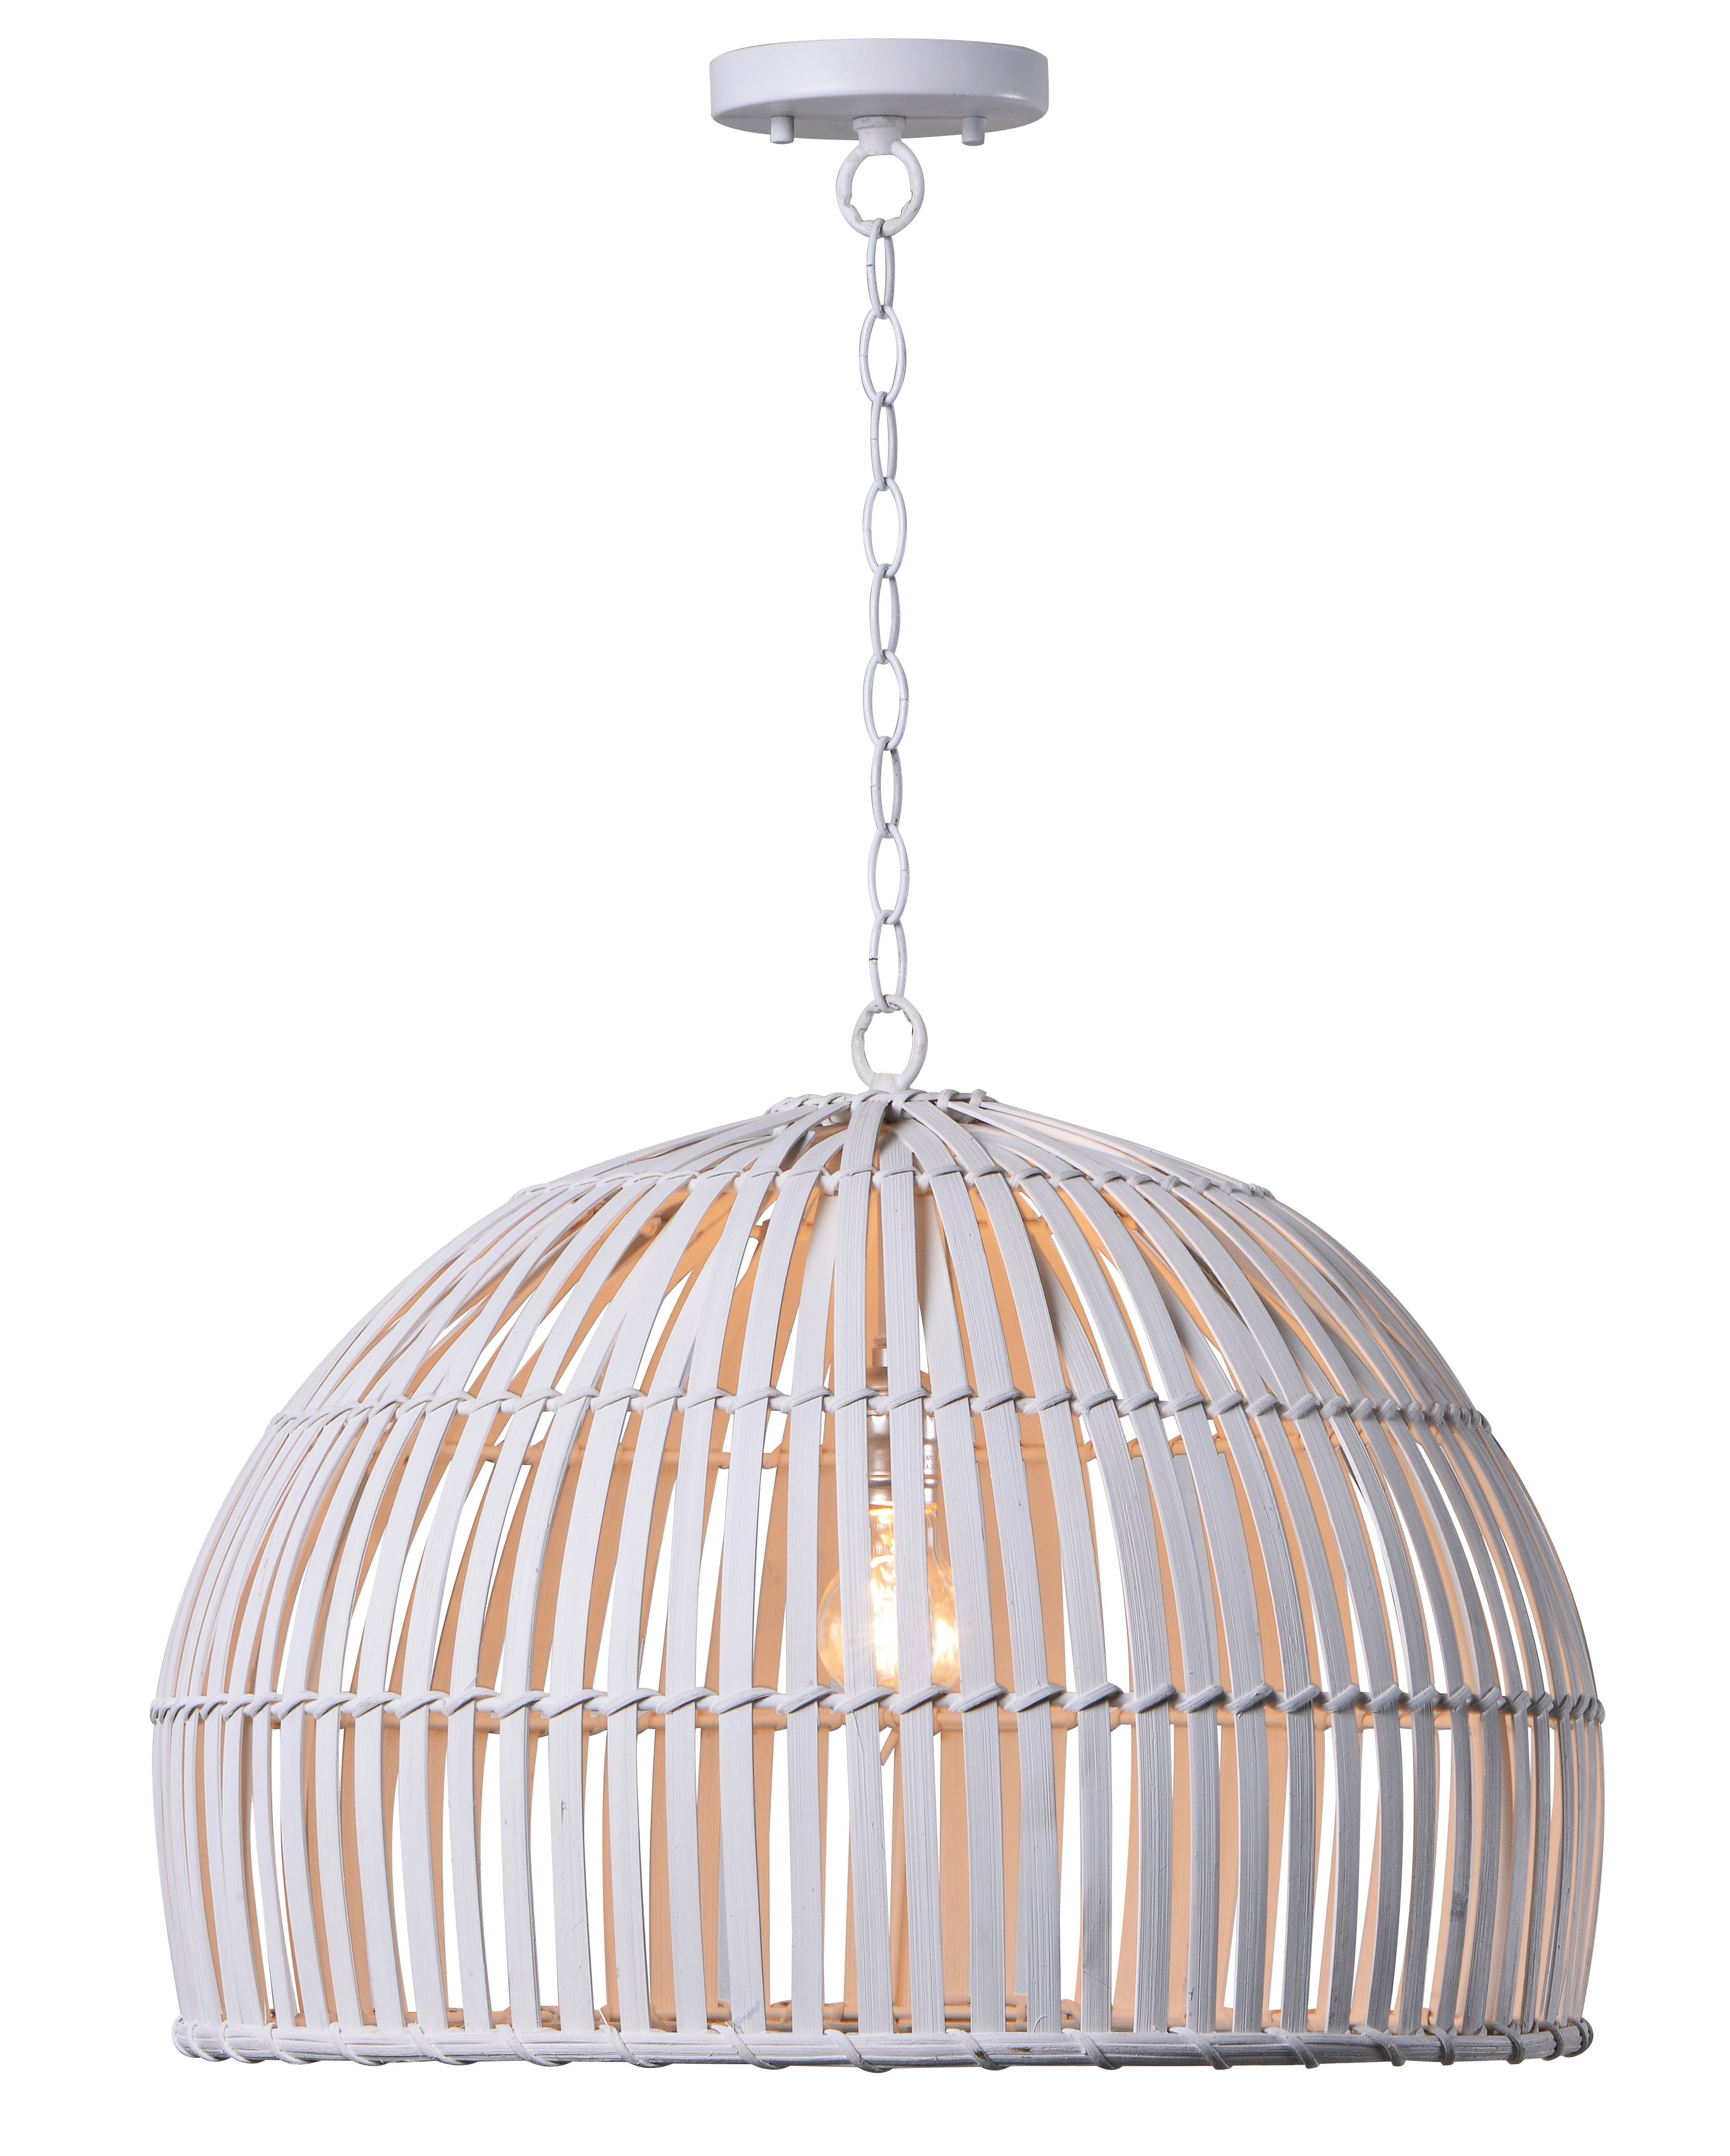 Delmore 1 Light Single Dome Pendant & Reviews | Joss & Main With Granville 3 Light Single Dome Pendants (Photo 9 of 30)